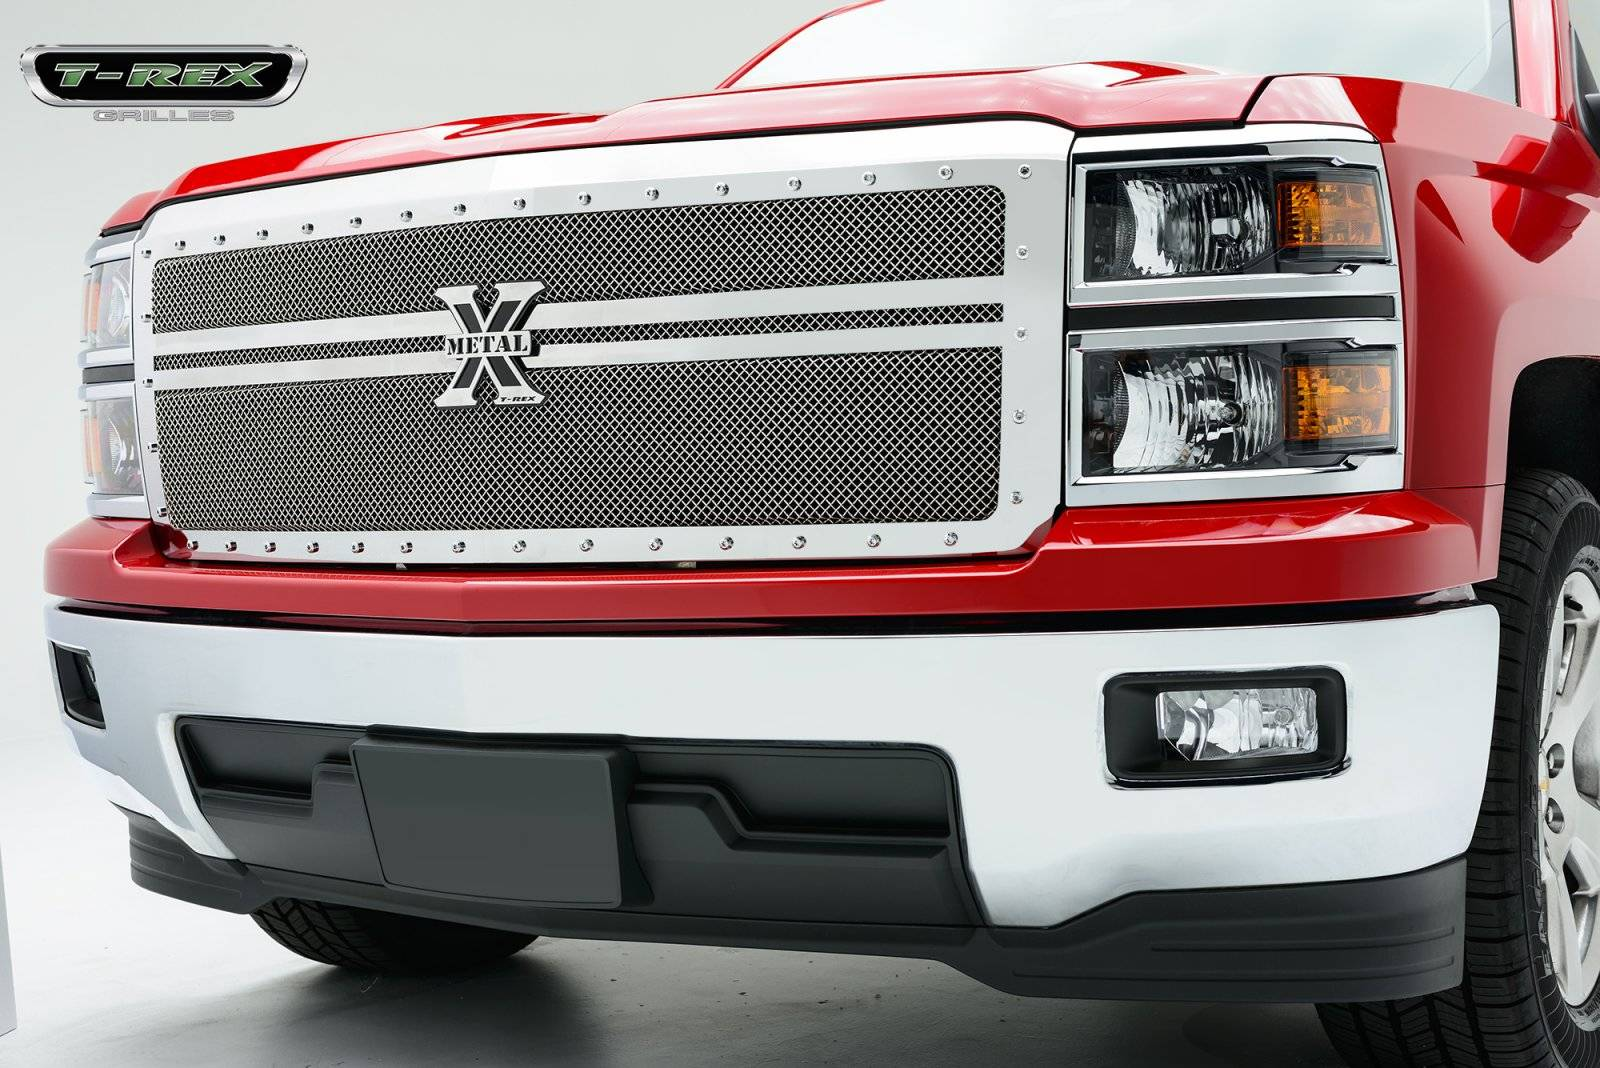 T-REX Grilles - Chevrolet Silverado X-METAL Series - Polished -  Main with 2 Bars Across, Replacement, 1 Pc - Pt # 6711180